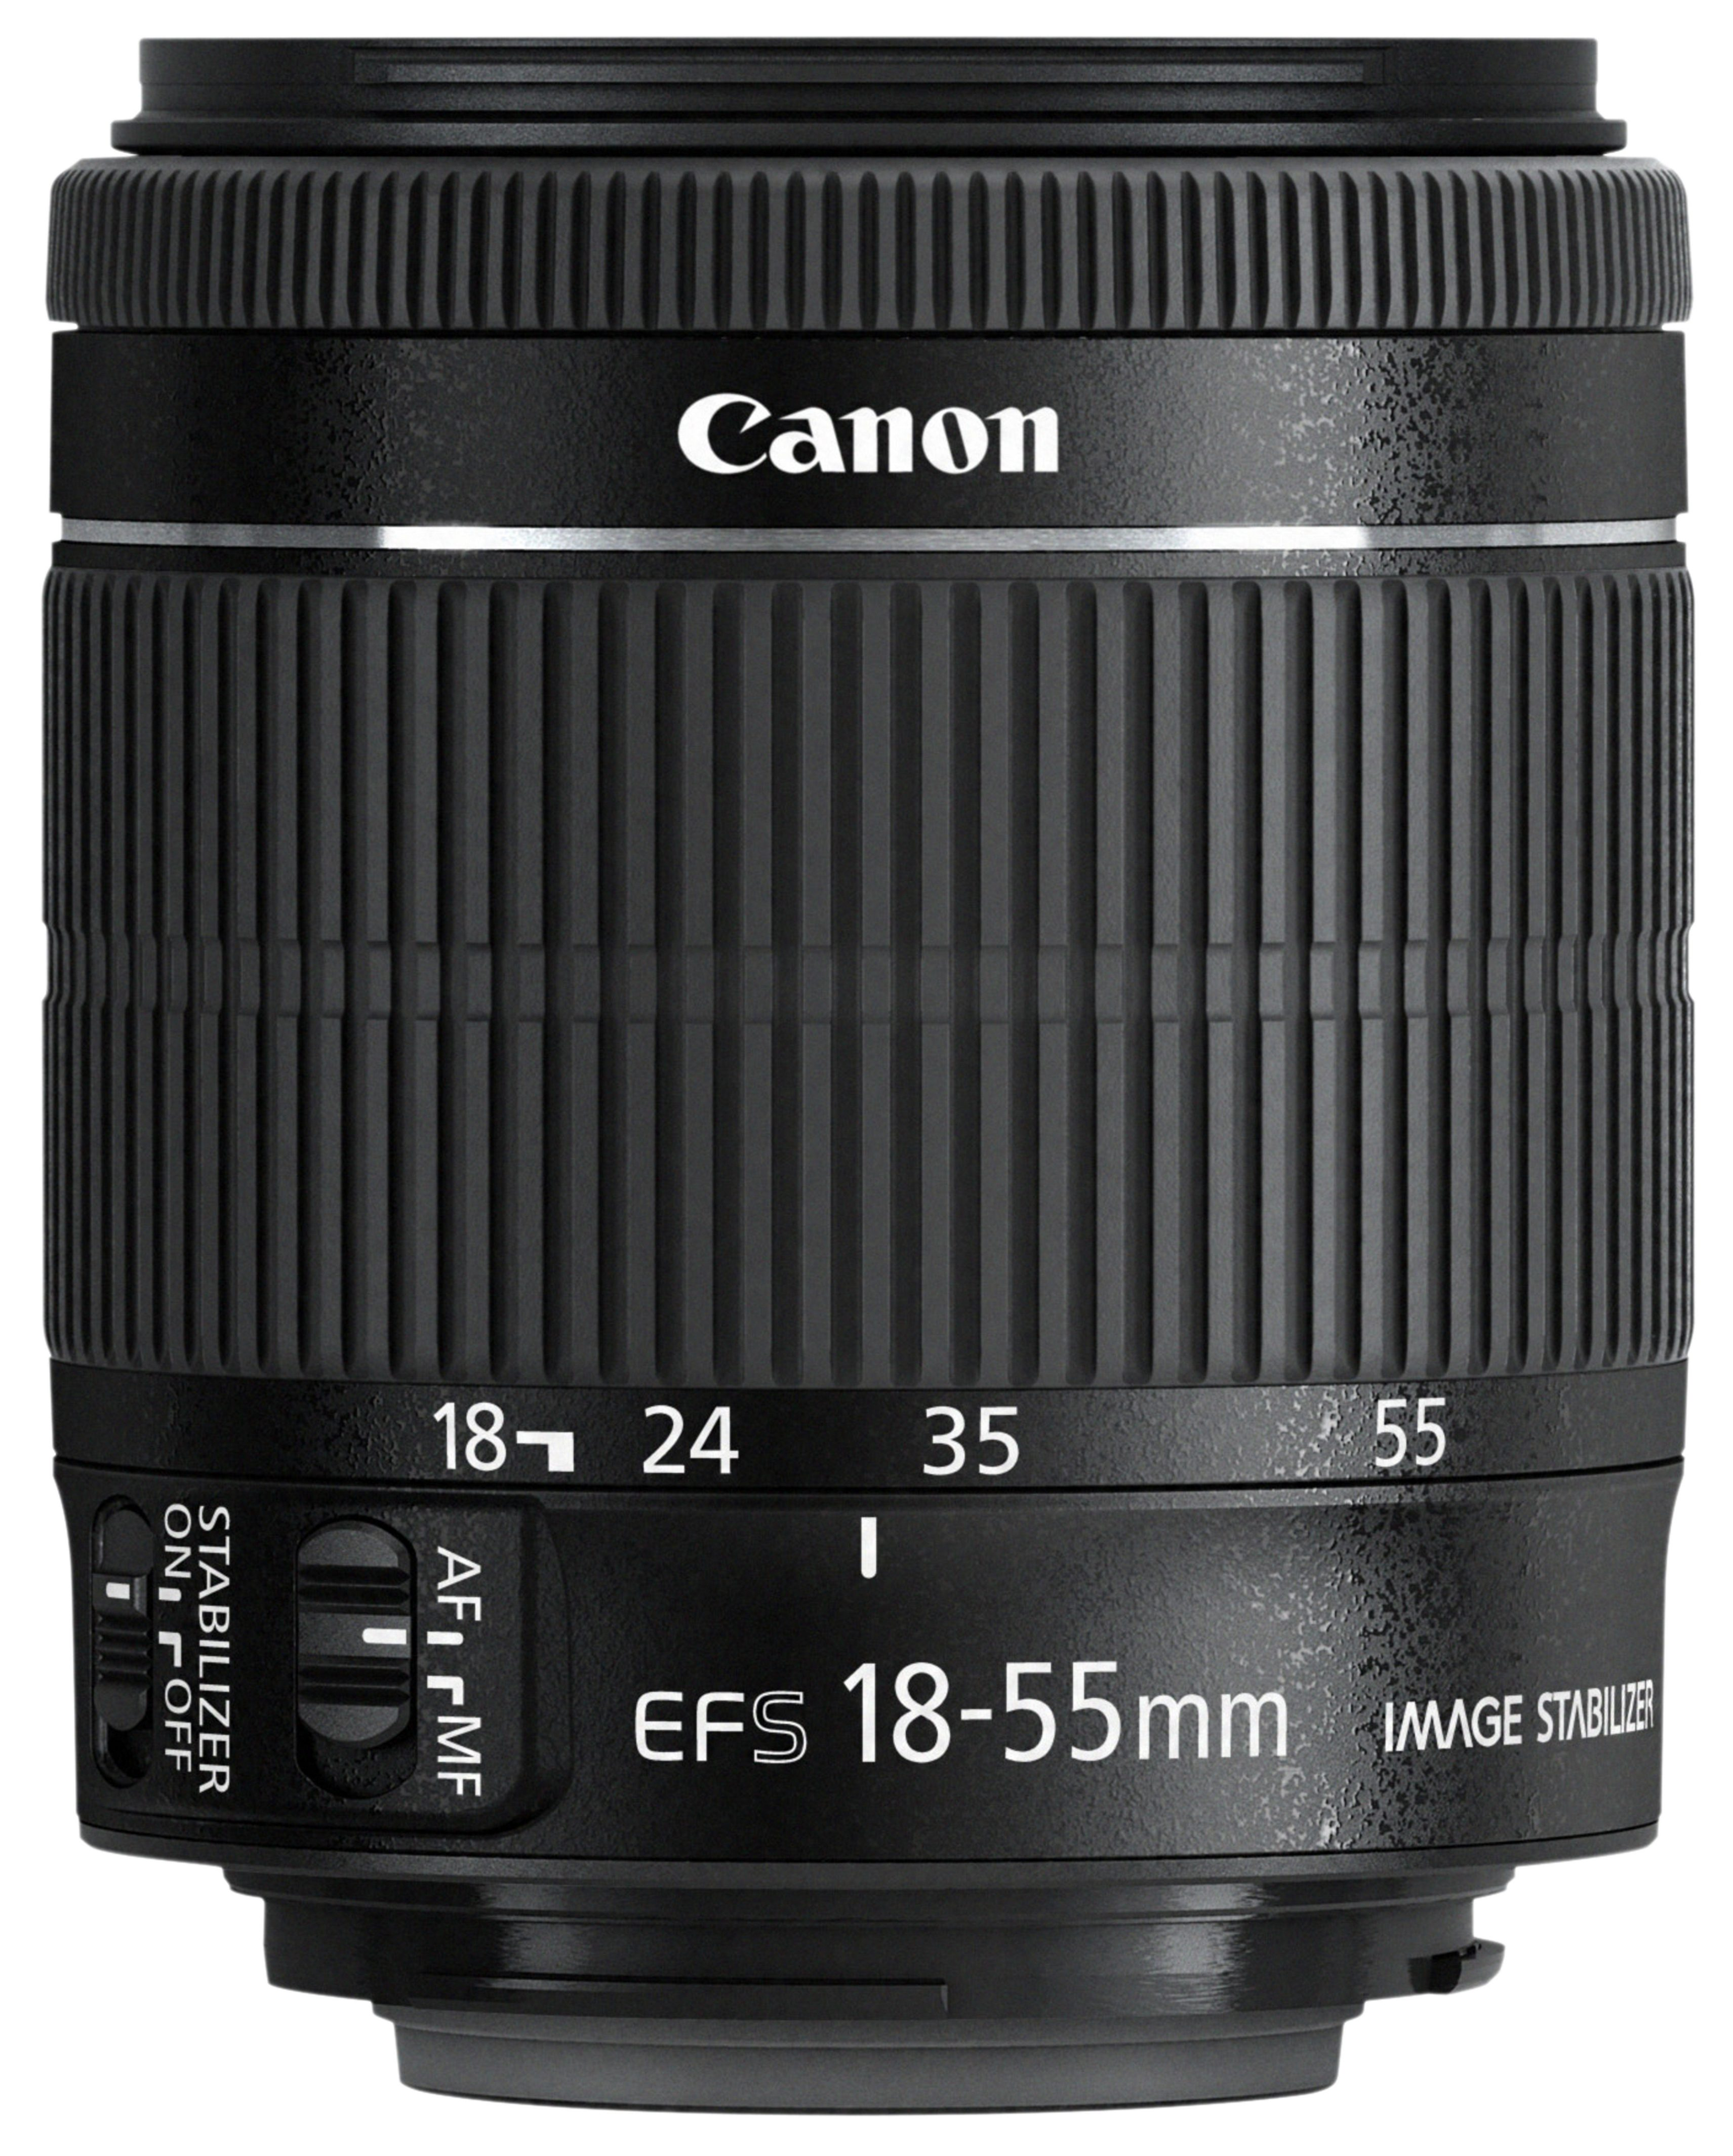 Canon EF-S 18-55mm f/3.5-5.6 IS Standardzoom Objektiv